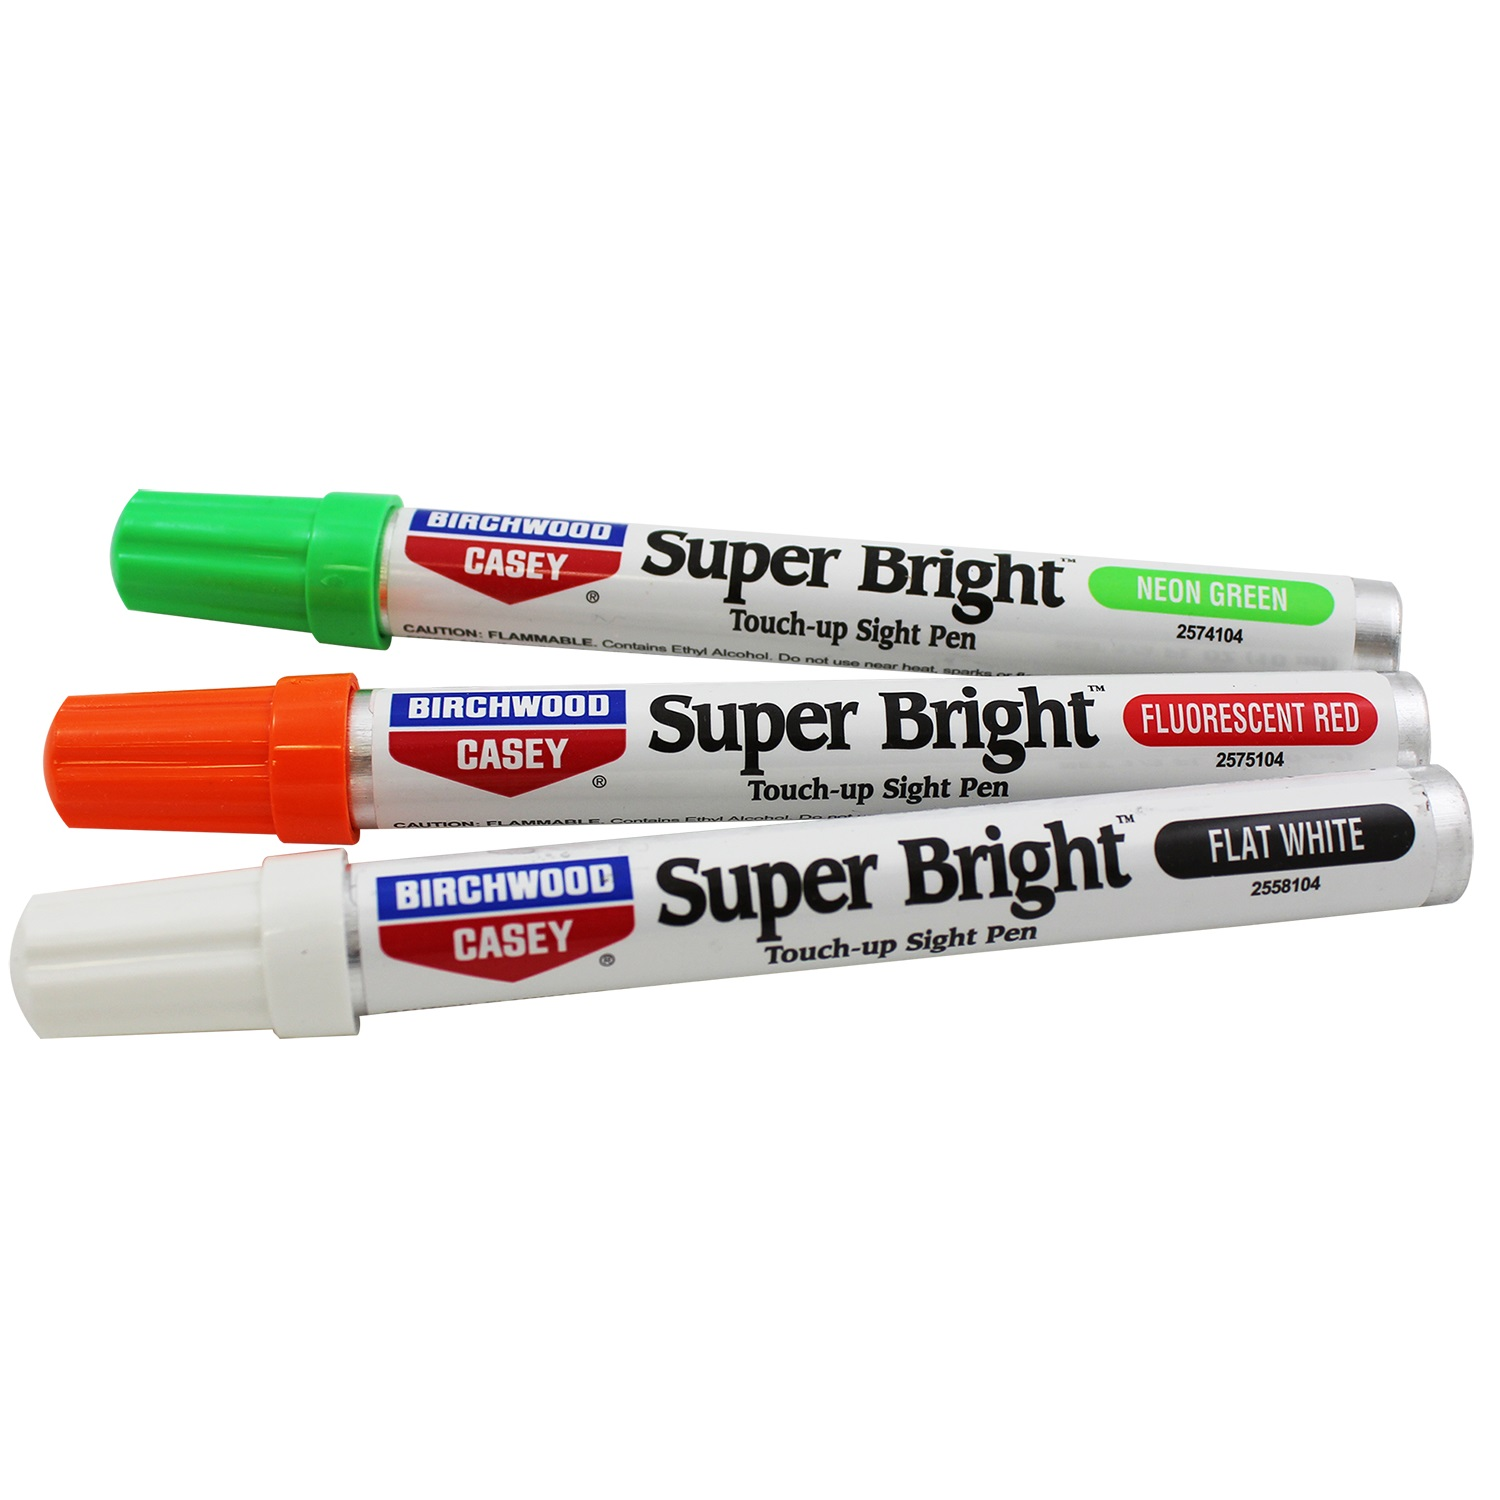 B/C SUPER BRIGHT PEN KIT GRN/RED/WHT